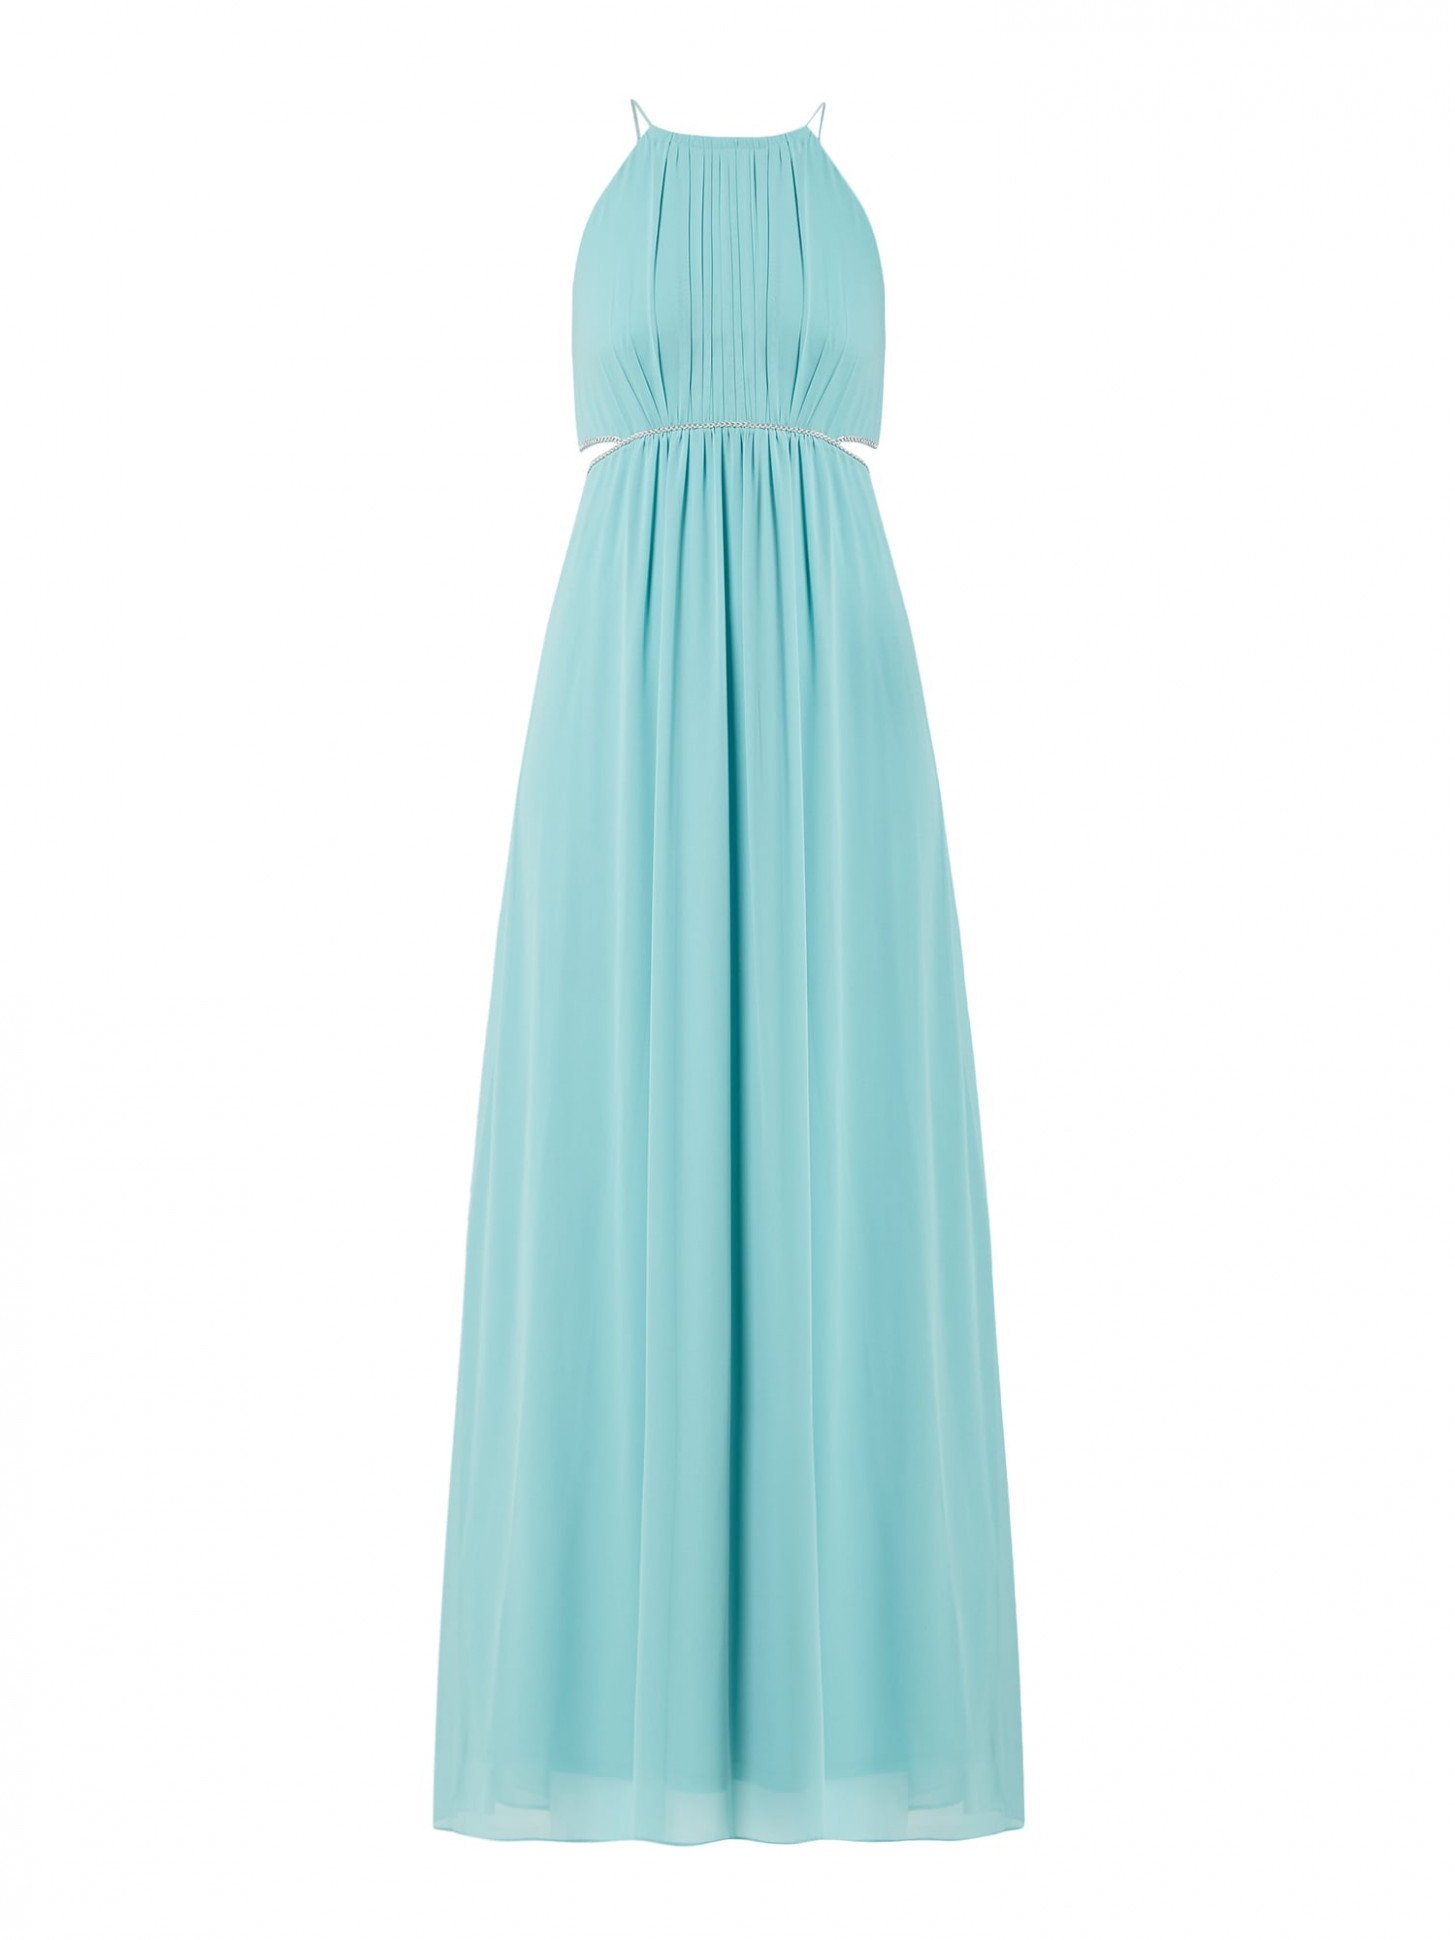 jake*s cocktail abendkleid aus chiffon in blau / türkis online kaufen (8) ▷ p&c online shop